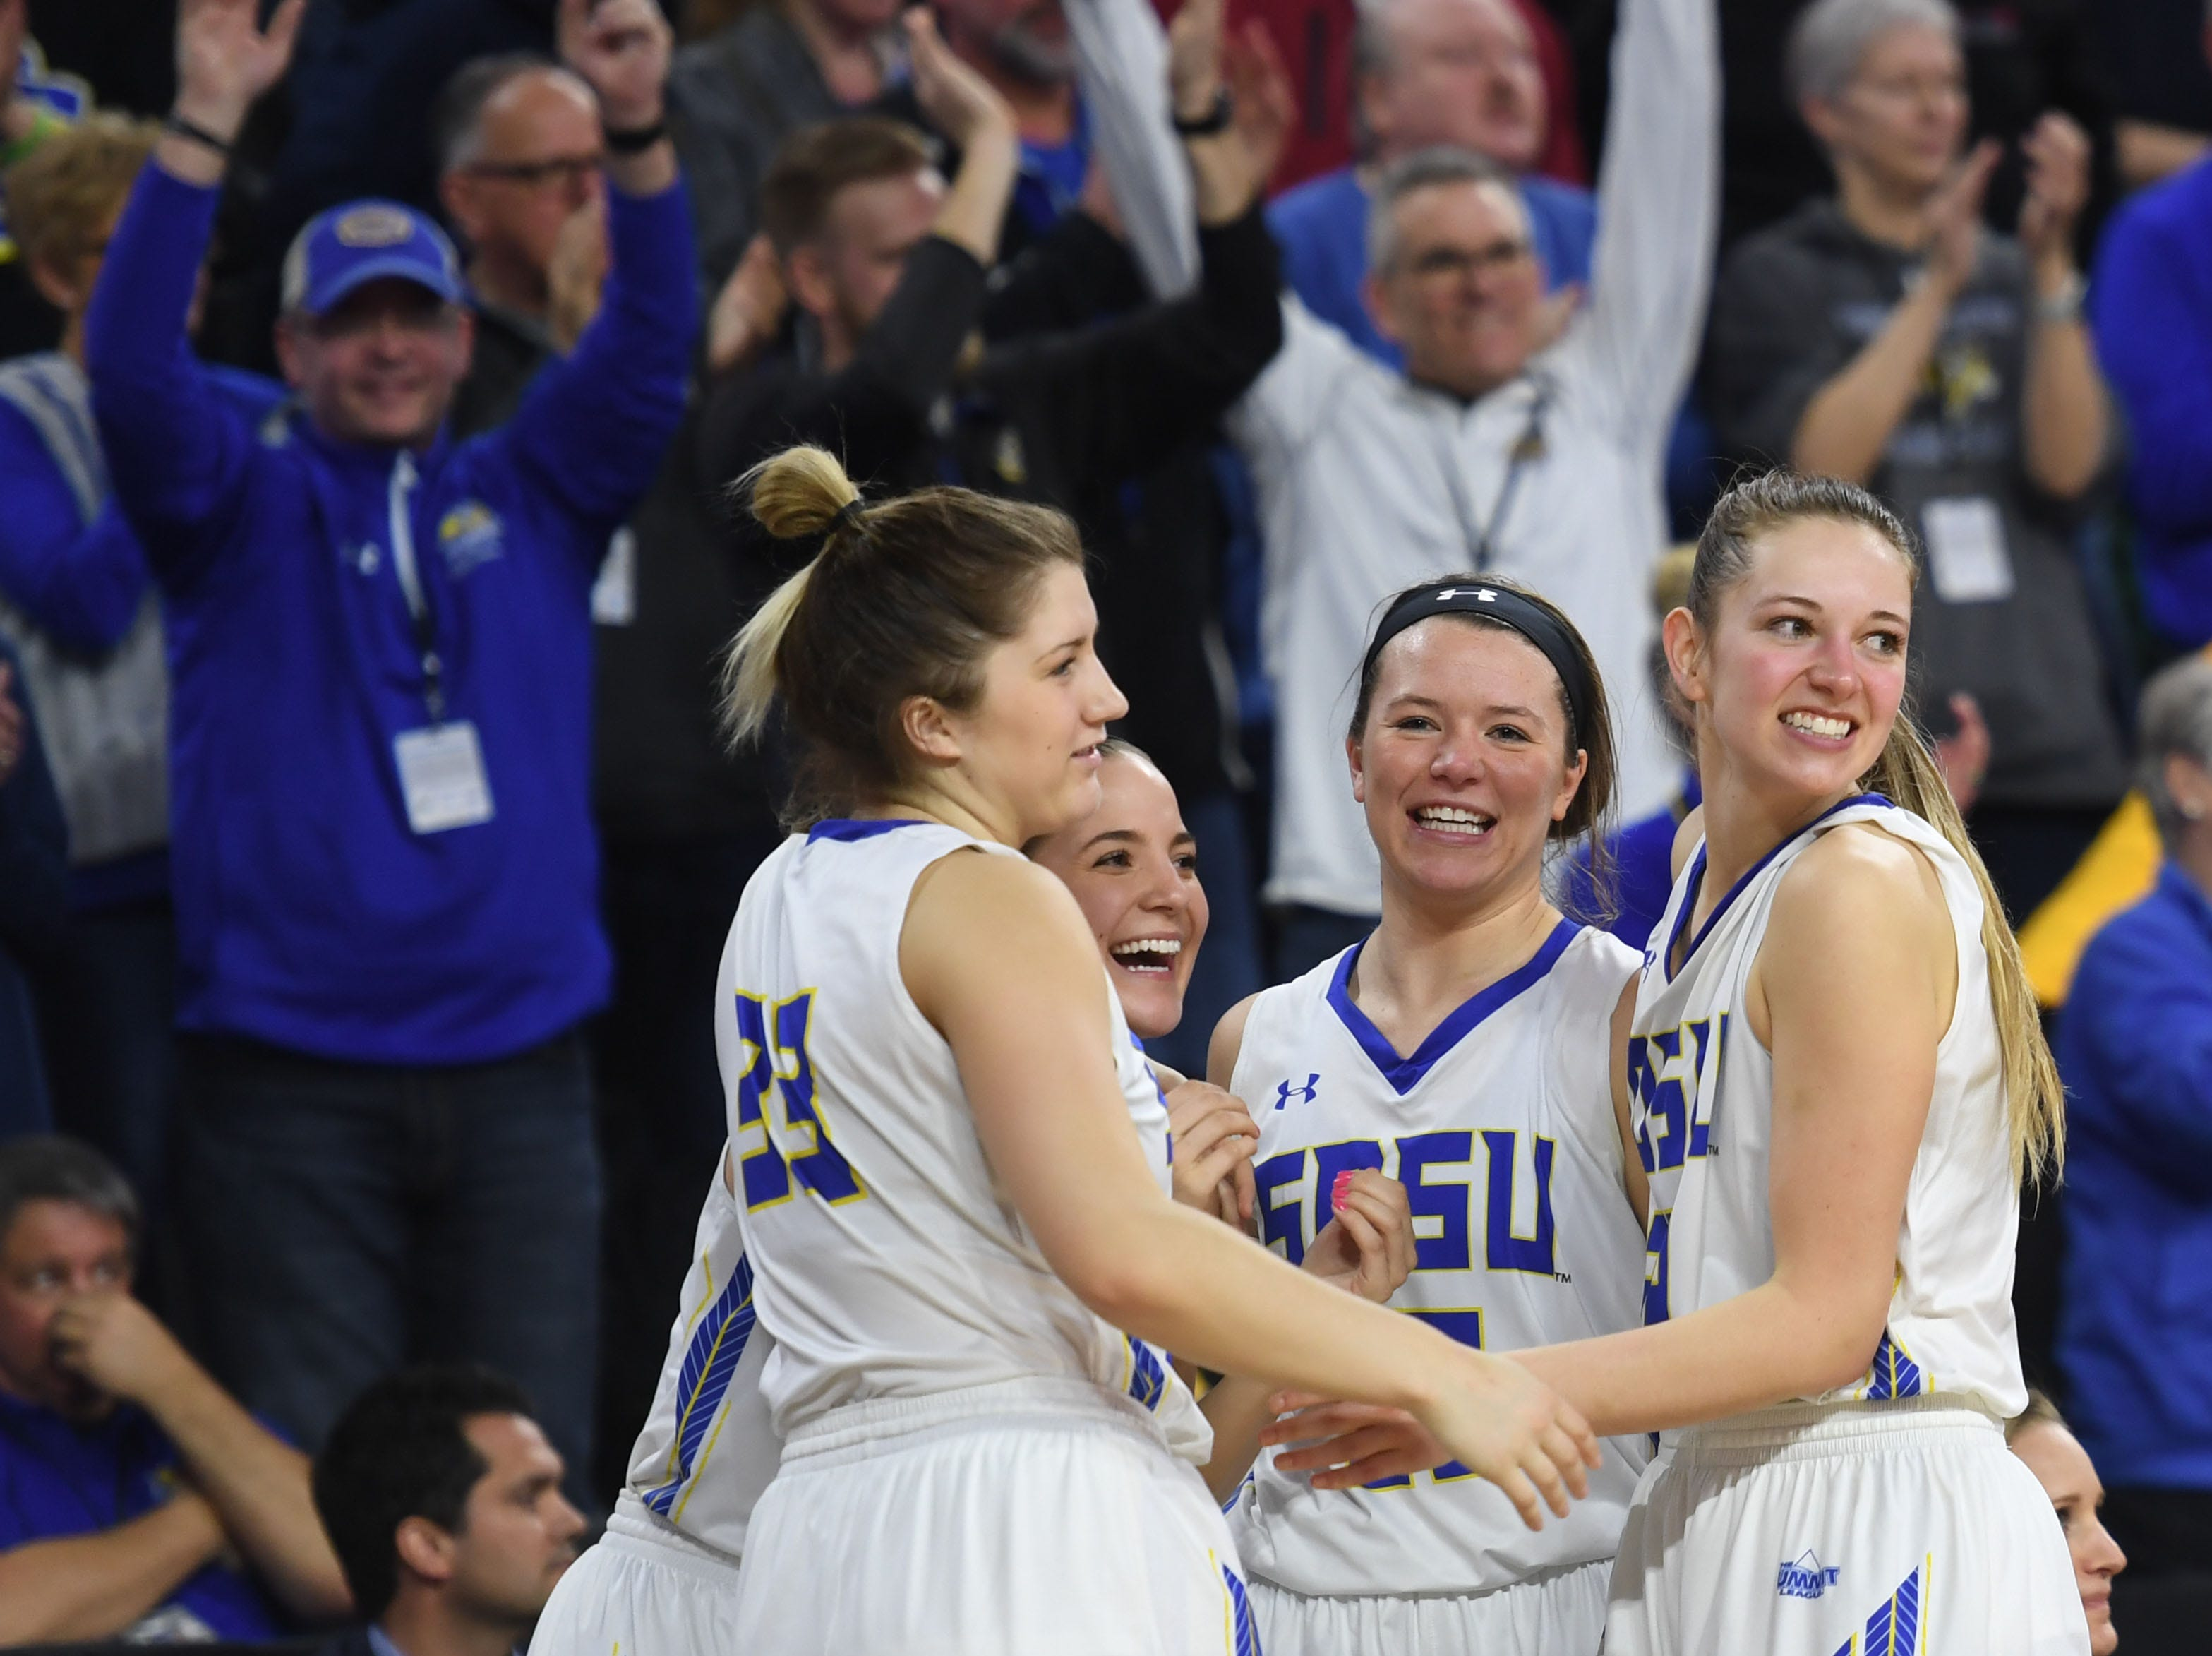 SDSU begins to celebrate in the final seconds of the game against USD Tuesday, March 12, in the Summit League women's championship at the Denny Sanford Premier Center in Sioux Falls.